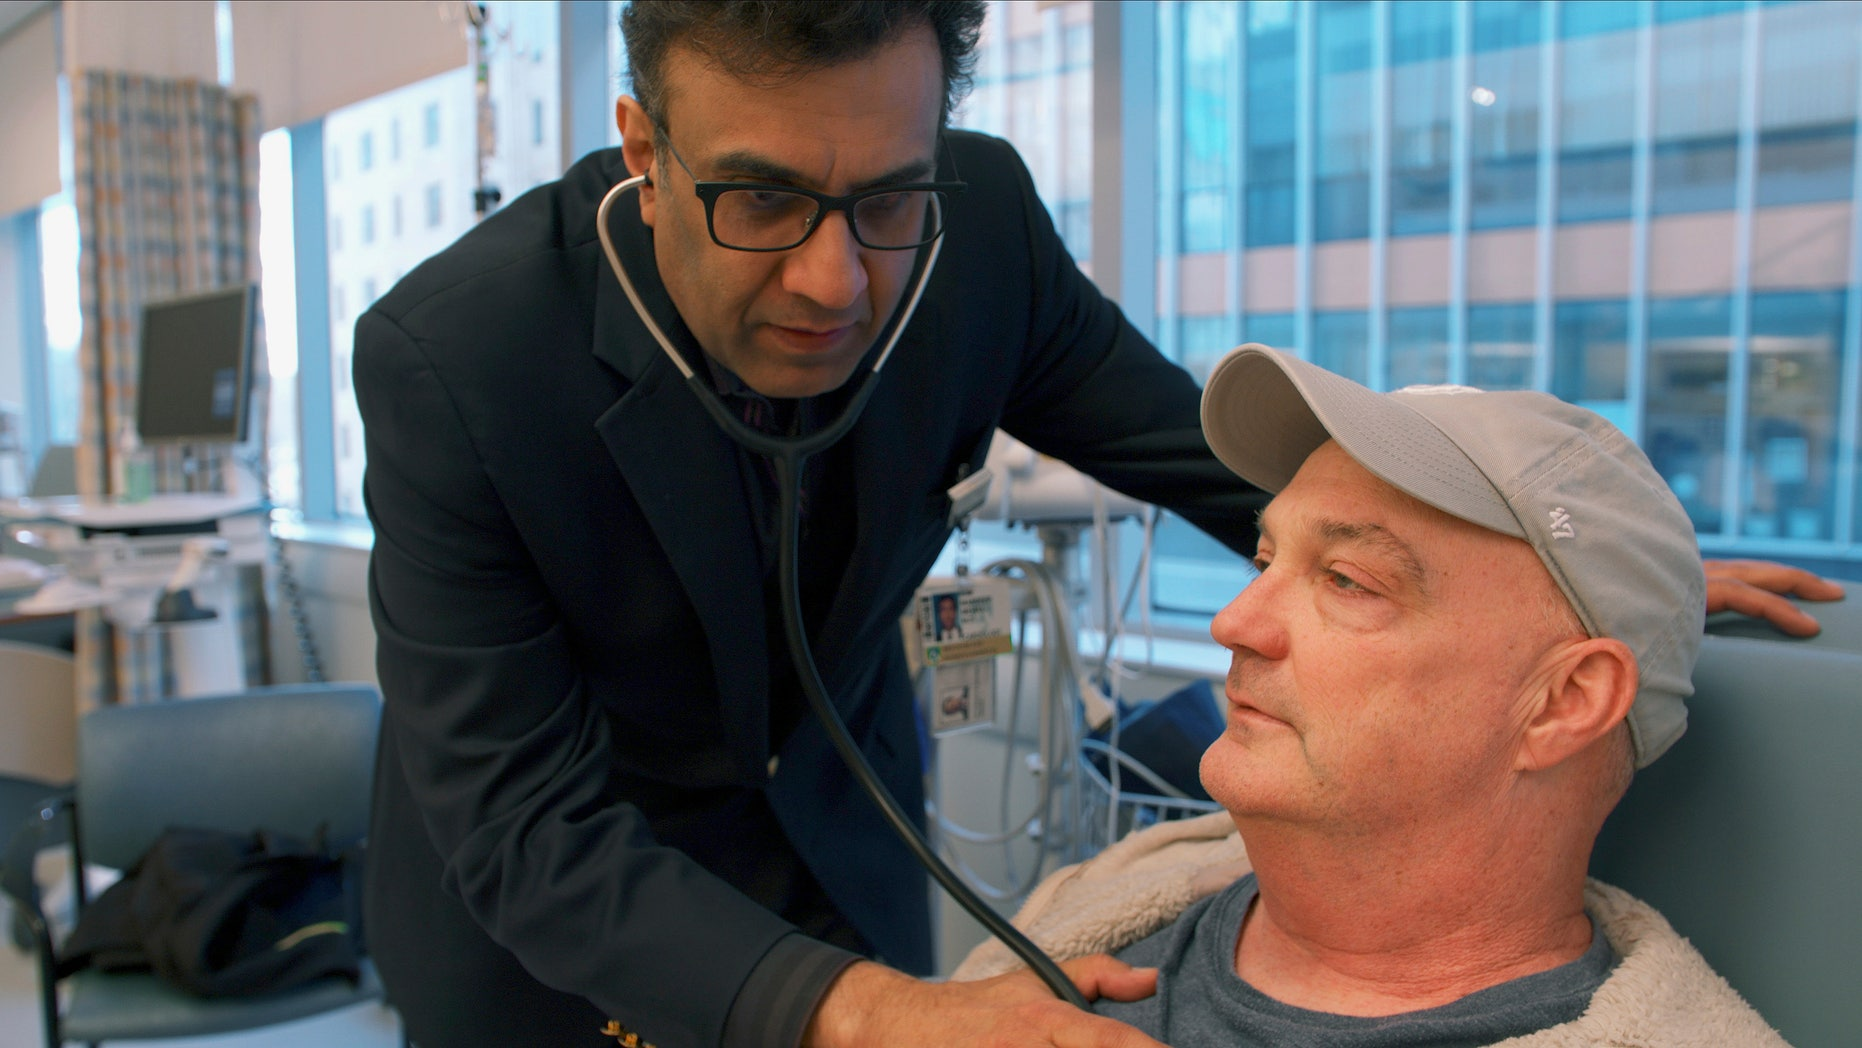 Patient JamesSullivon, who received a hepatitis C-positive heart transplant, was given antiviral medicine shortly after the procedure in hopes of blocking hepatitis C infection rather than having to treat it.